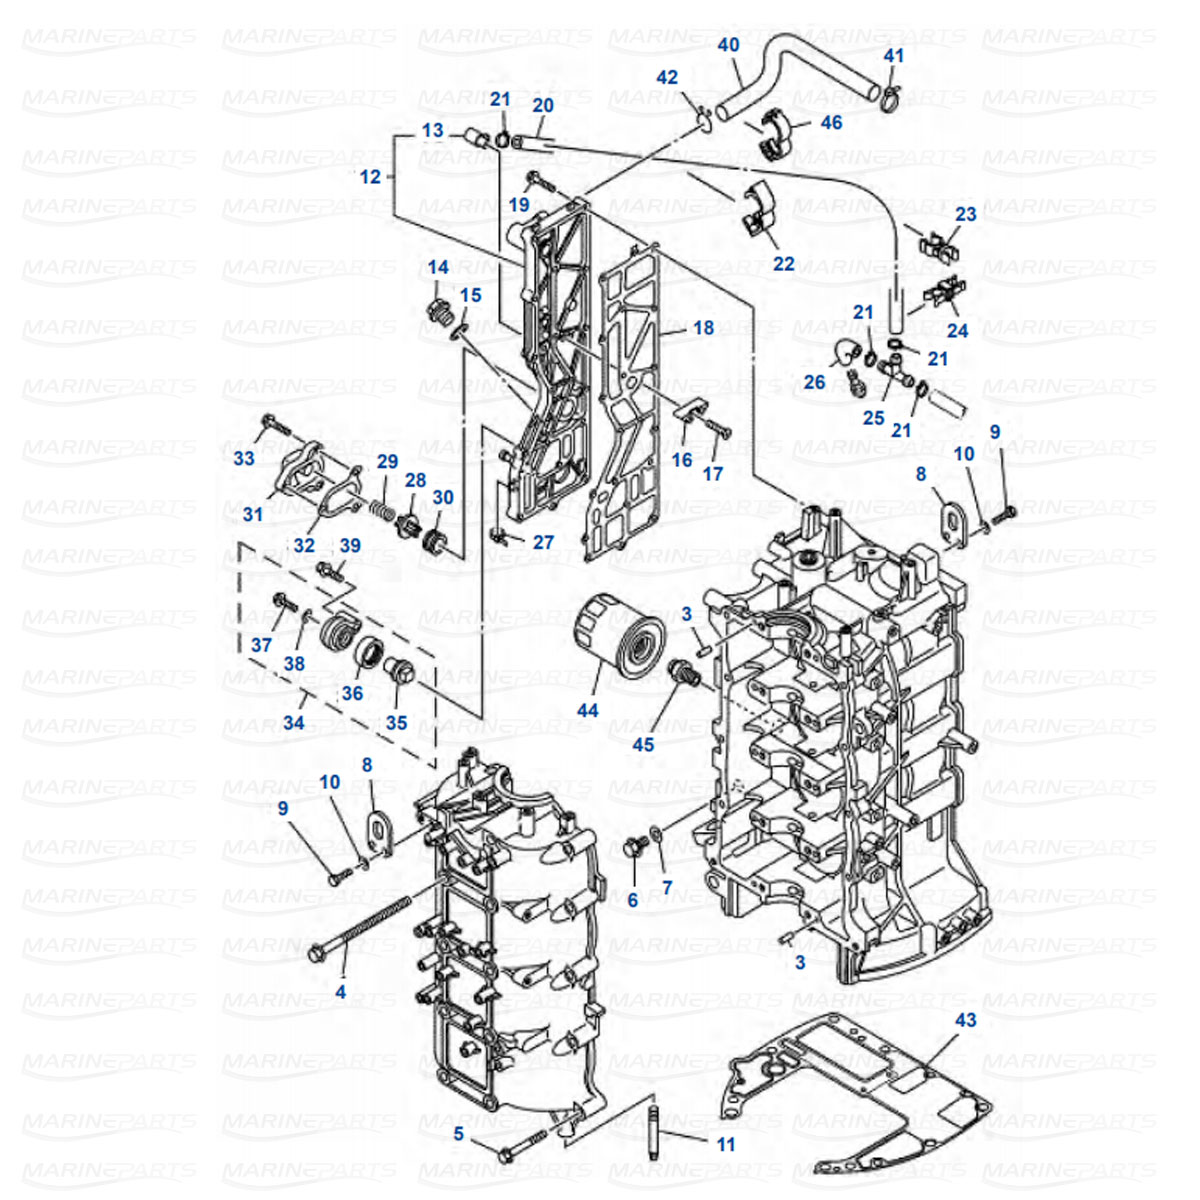 Yamaha engine parts for outboard motor, marineparts.eu on